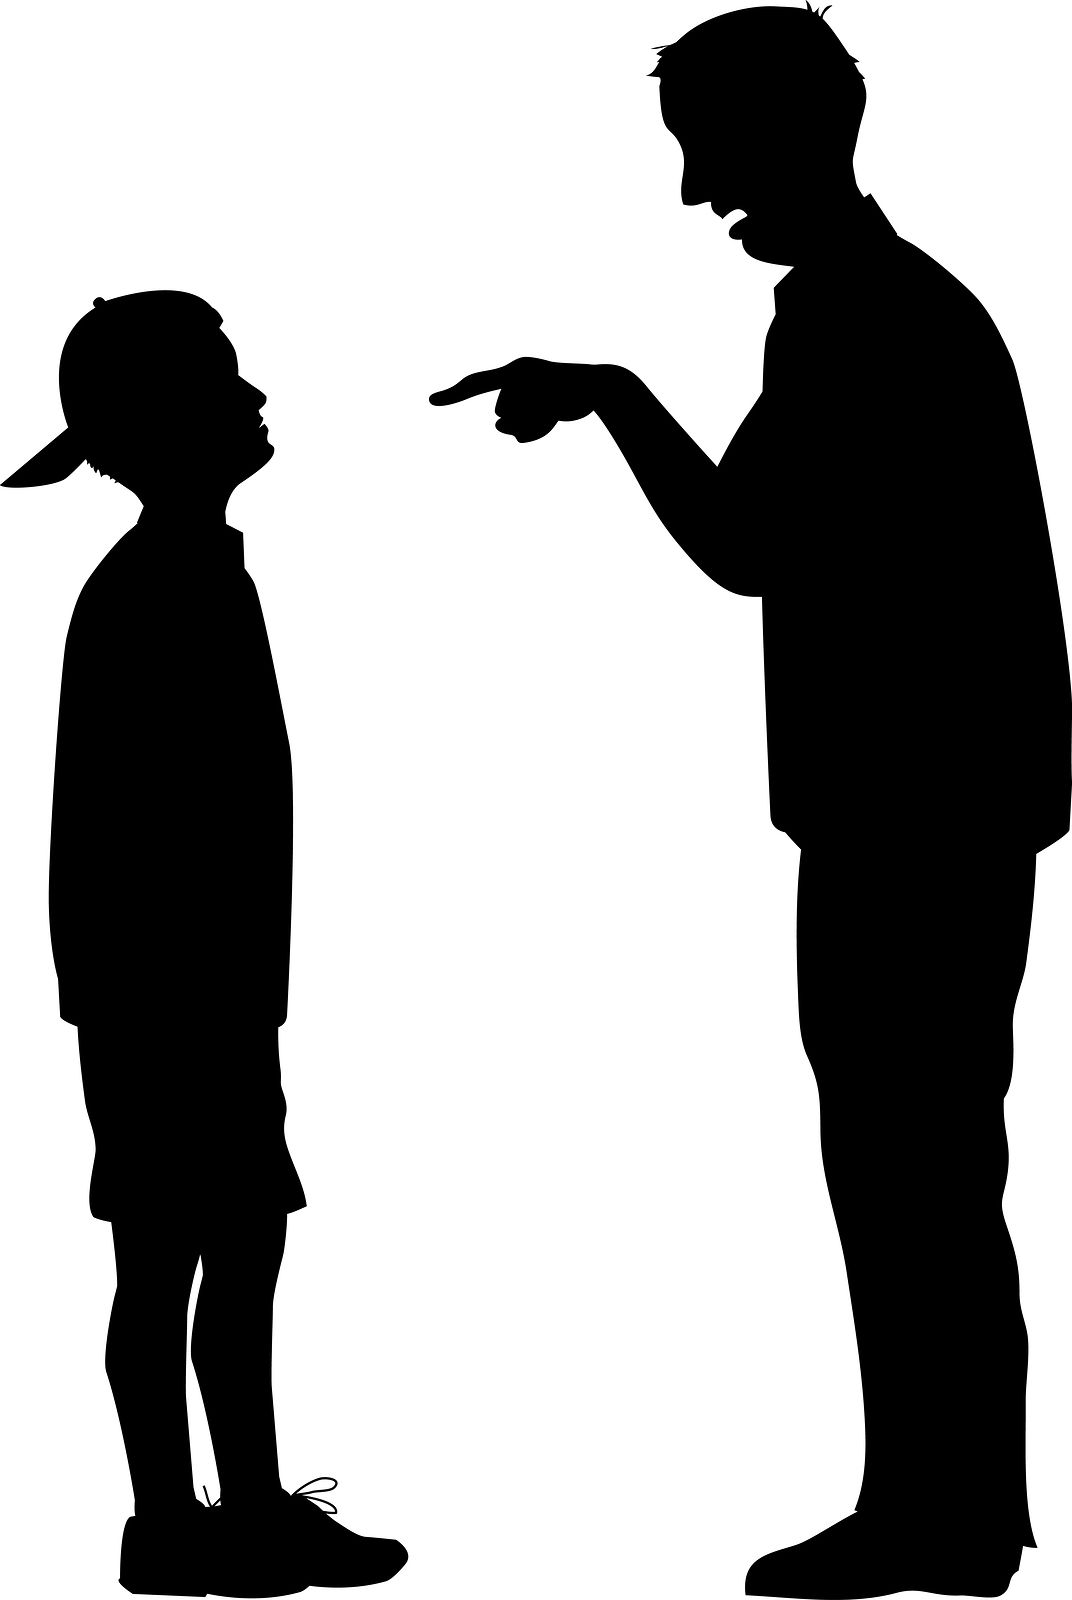 13 year olds like to argue. | Parenting | Conscious ...